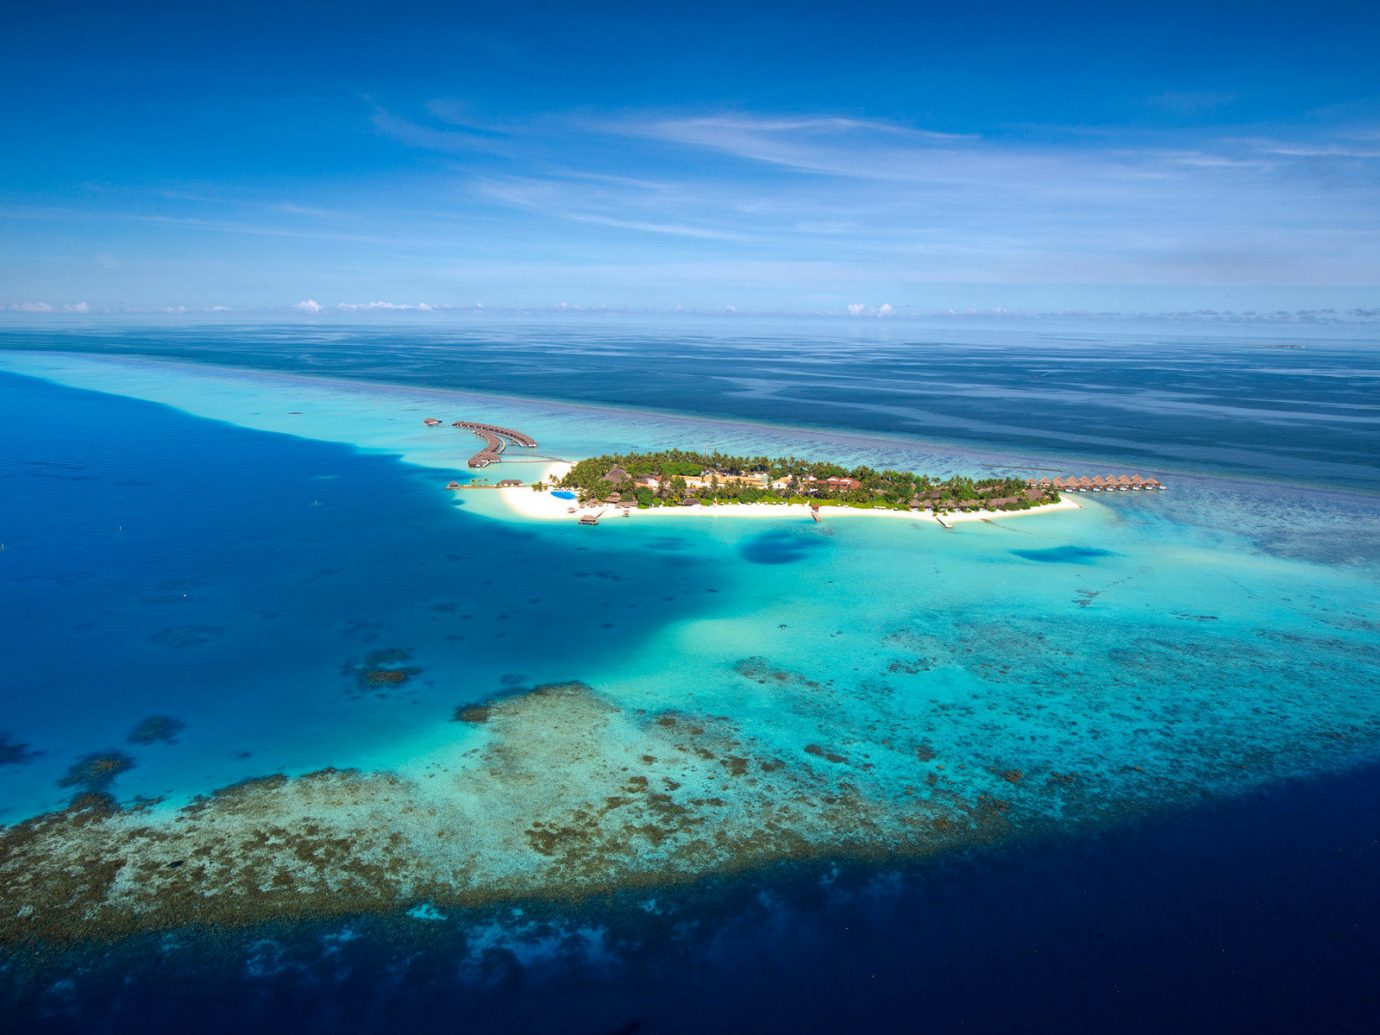 Trip Ideas water Nature reef Sea geographical feature landform Ocean horizon blue archipelago Coast wind wave Beach islet Island atoll wave cape Lagoon bay shore swimming